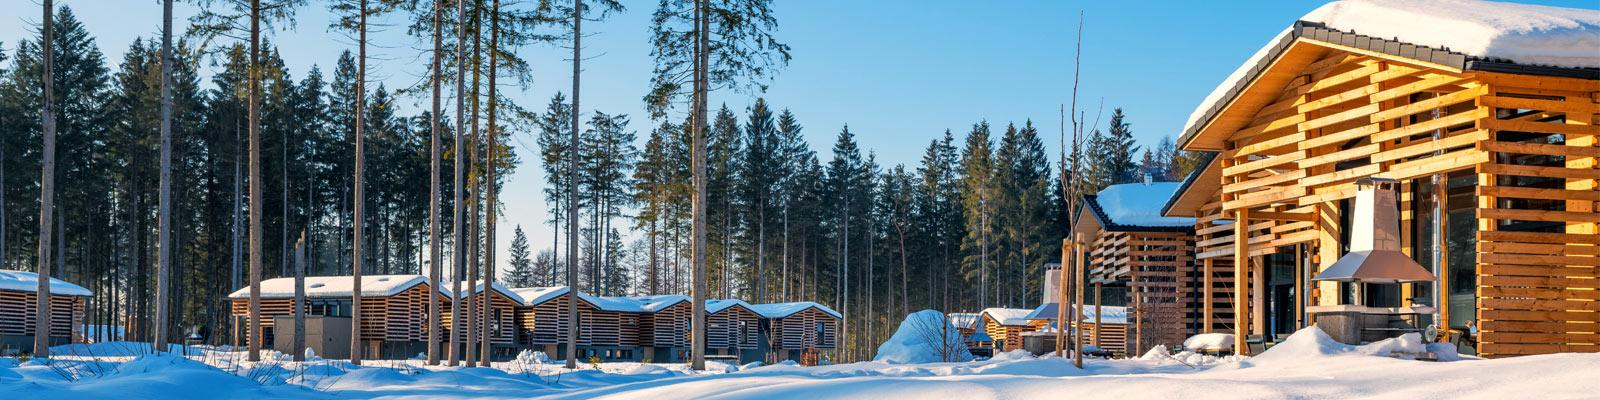 Wintersport bei Center Parcs